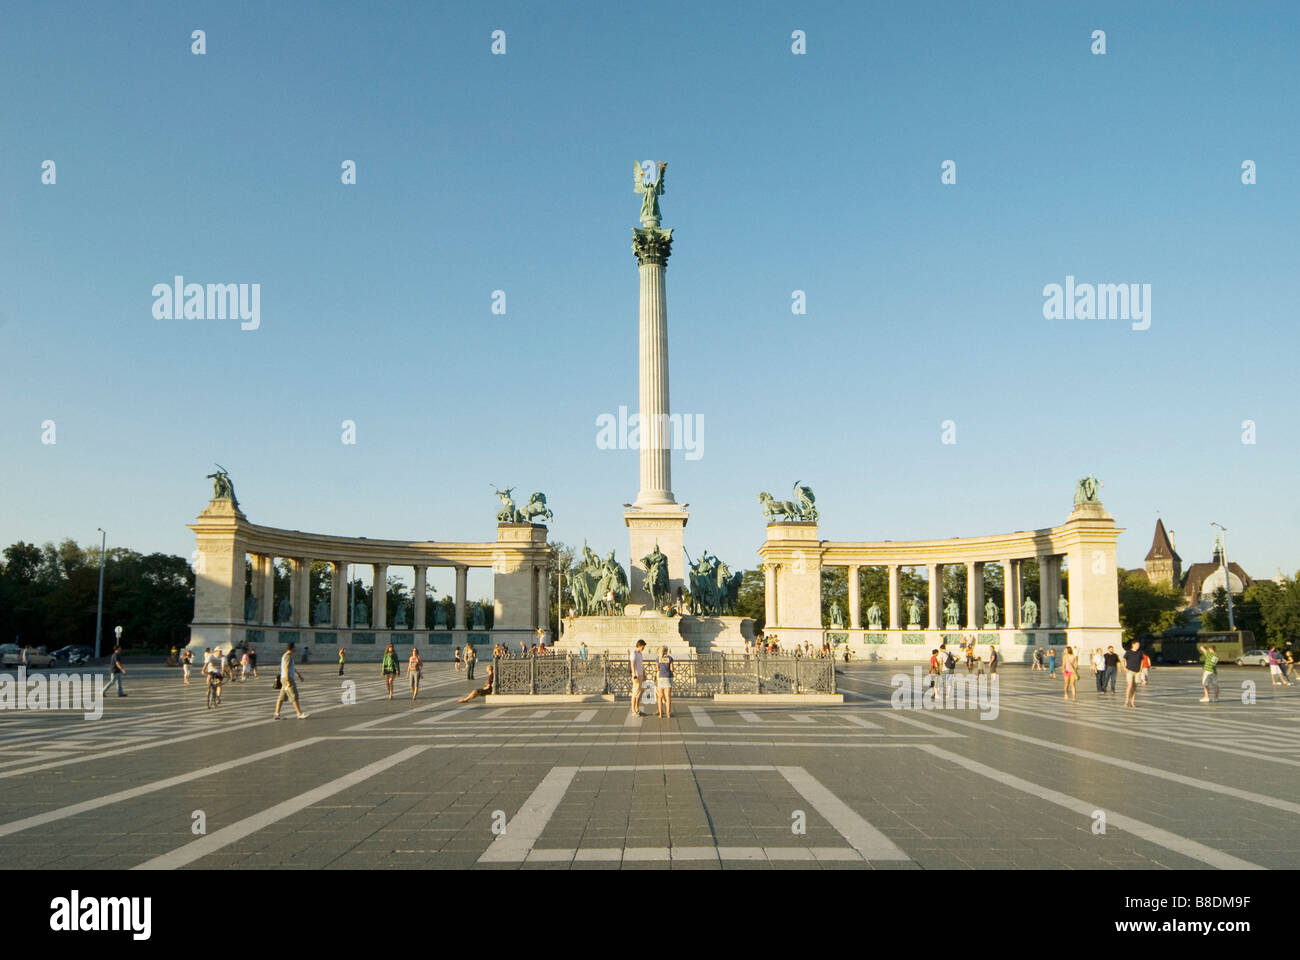 Heroes square budapest - Stock Image